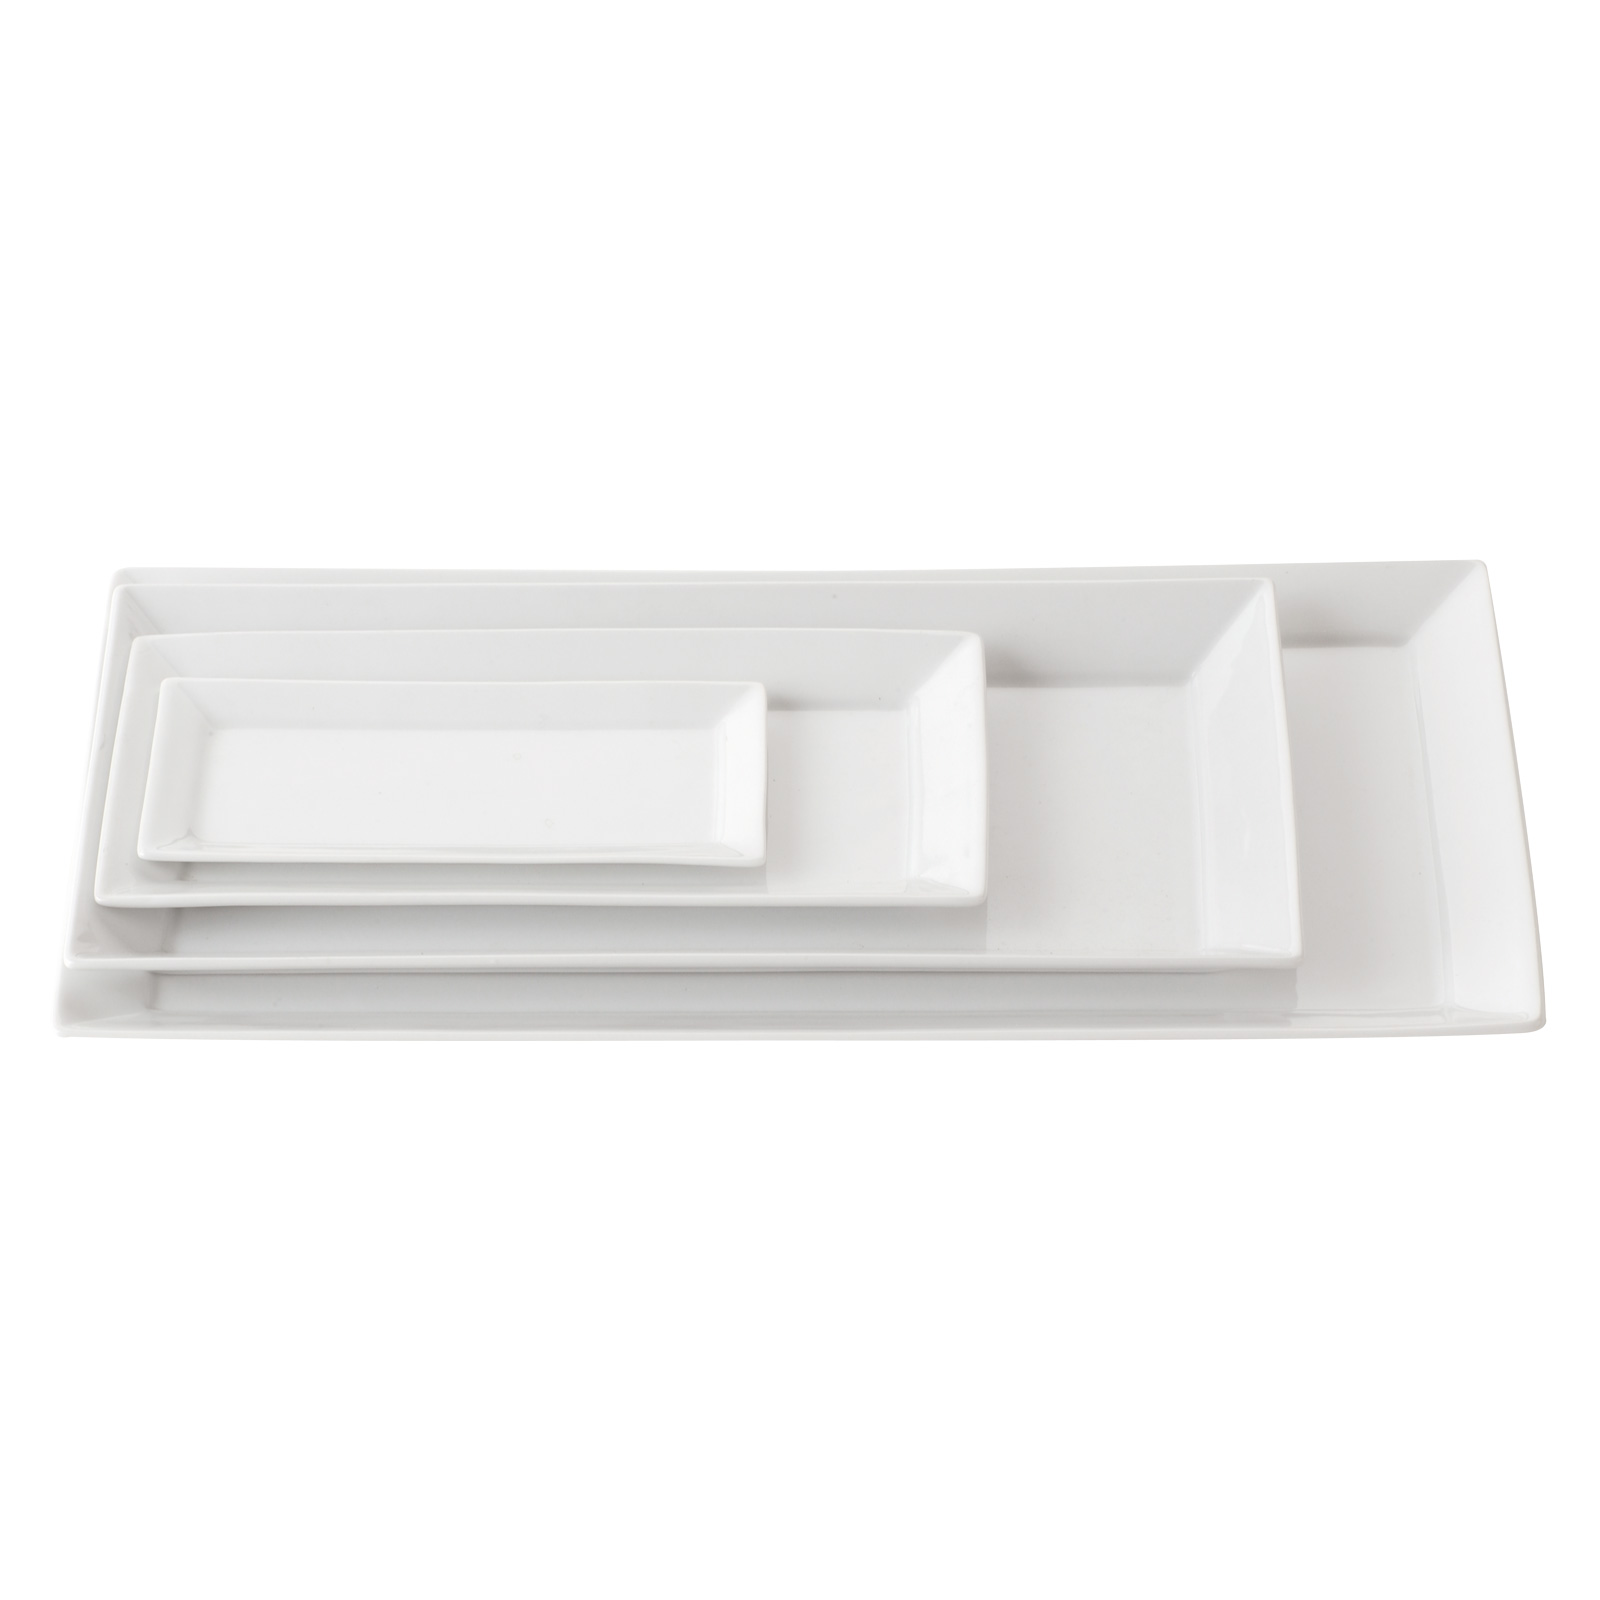 Set of 2 Zensation Rectangular Trays Large by BIA